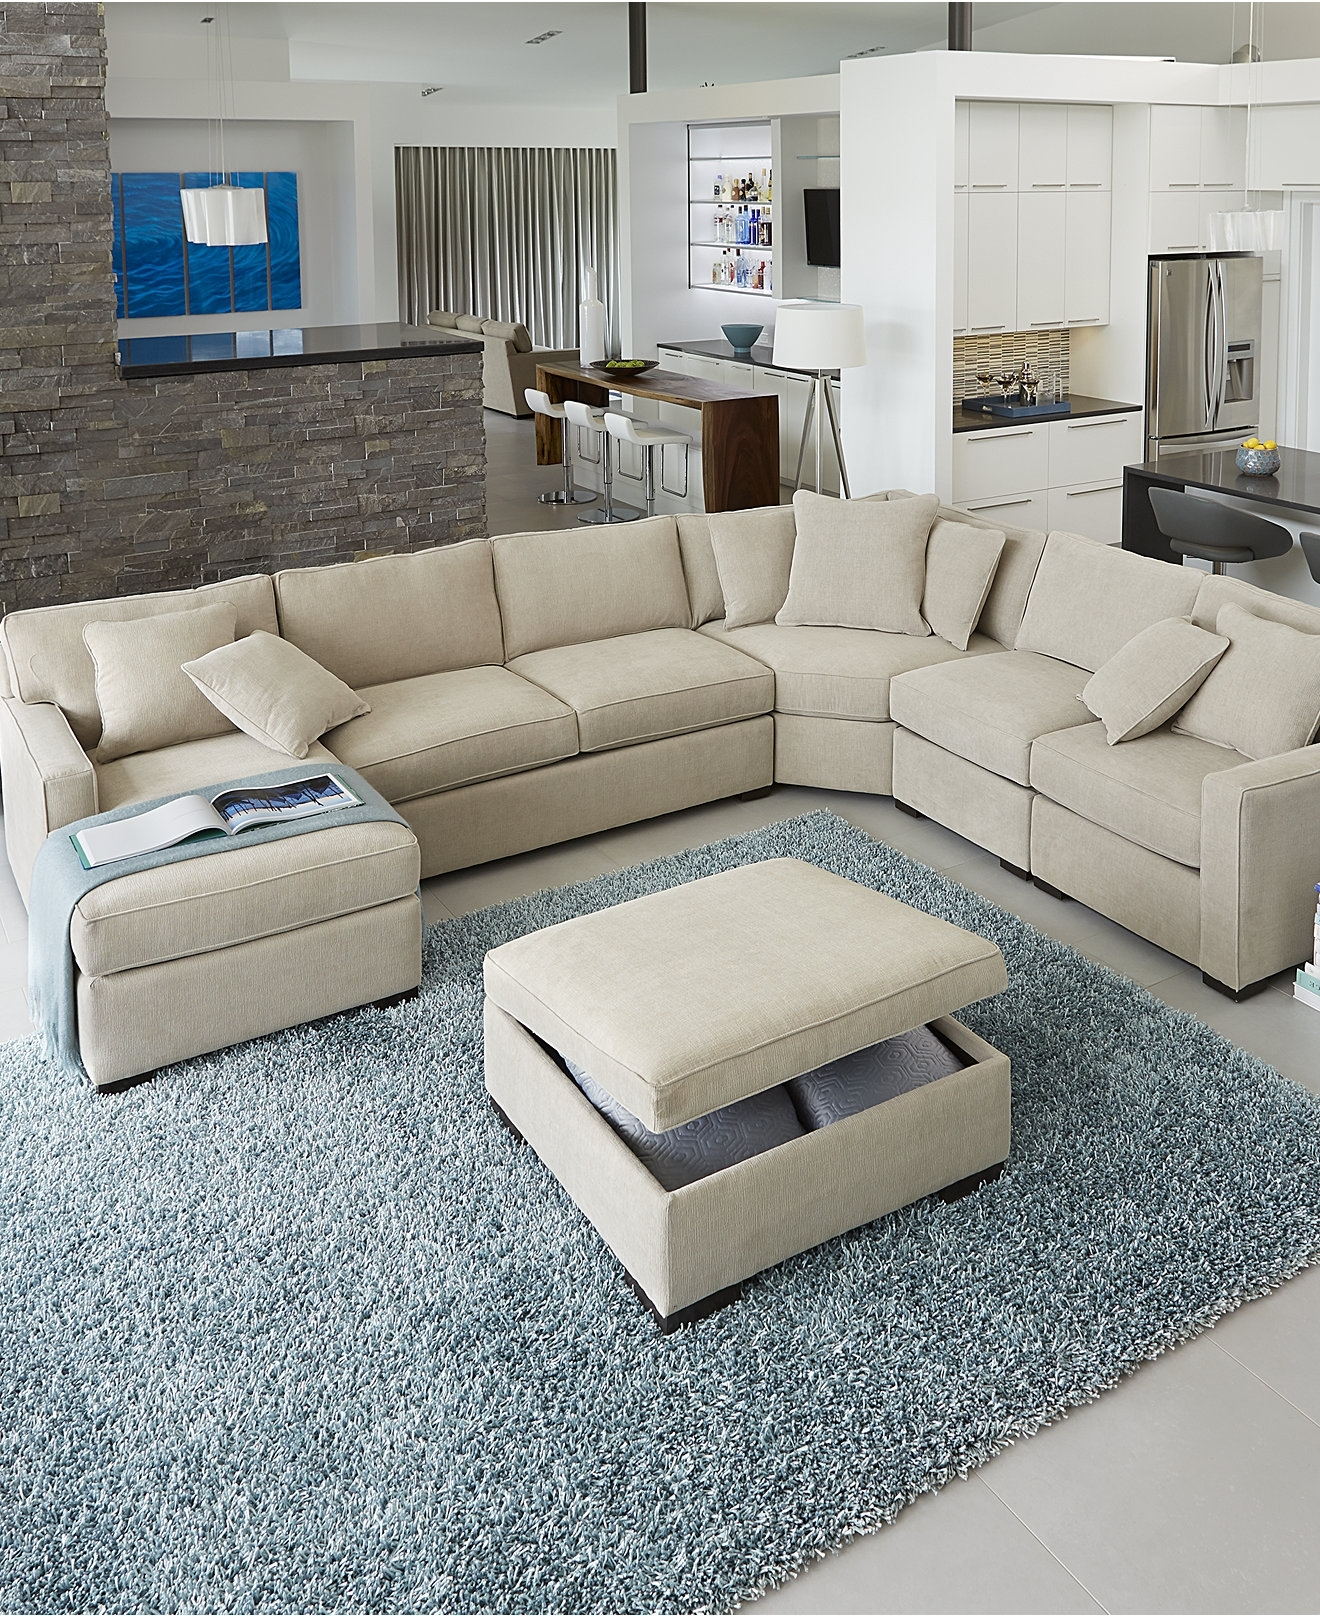 Radley Fabricectionalofa Collection Created For Macys Blue Living With Popular Sectional Sofas In Philippines (View 16 of 20)